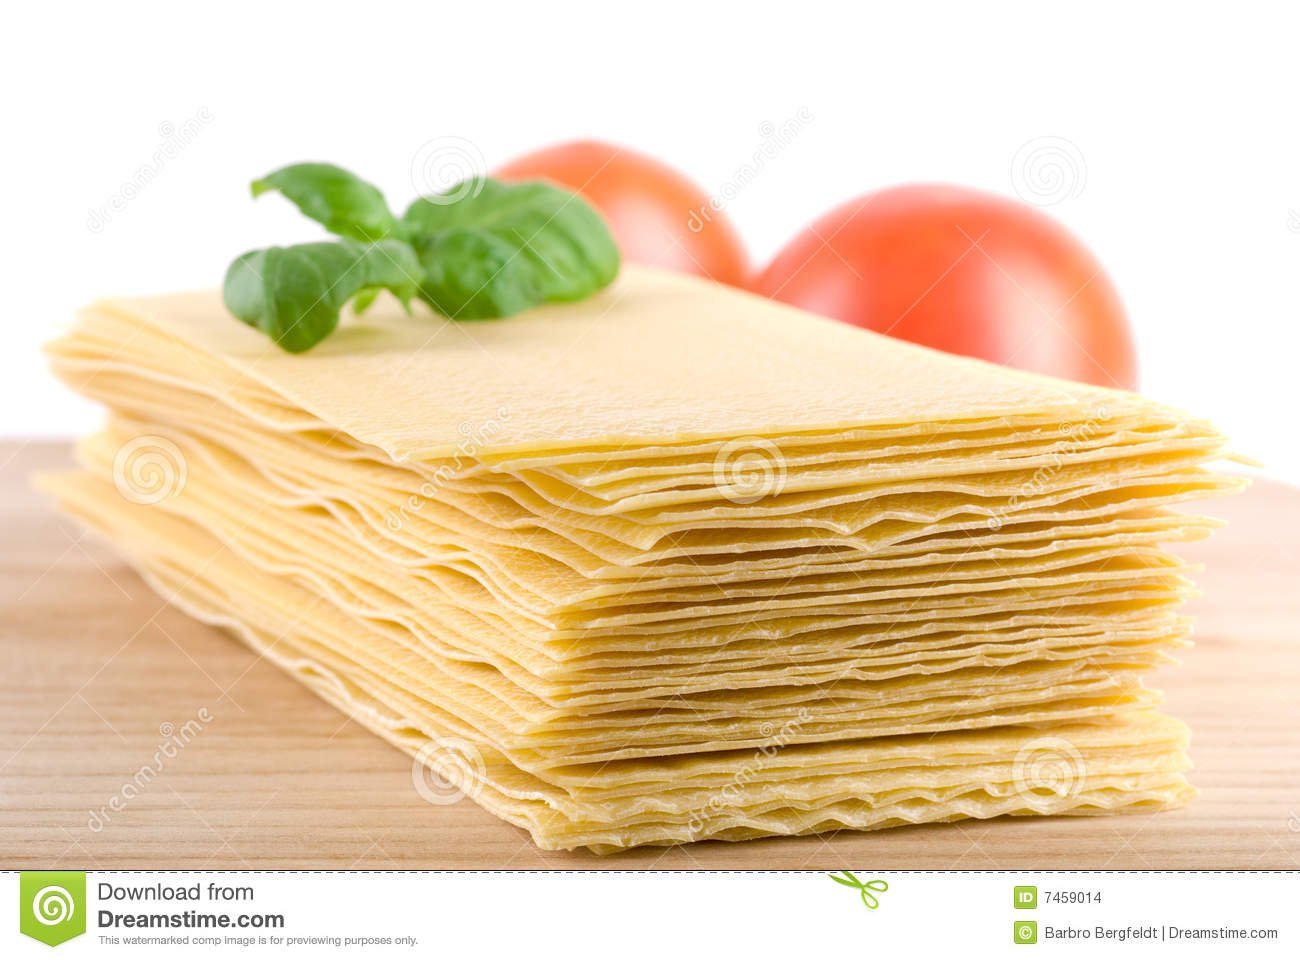 Dried lasagna sheets on wooden cutting board two tomatoes and basil